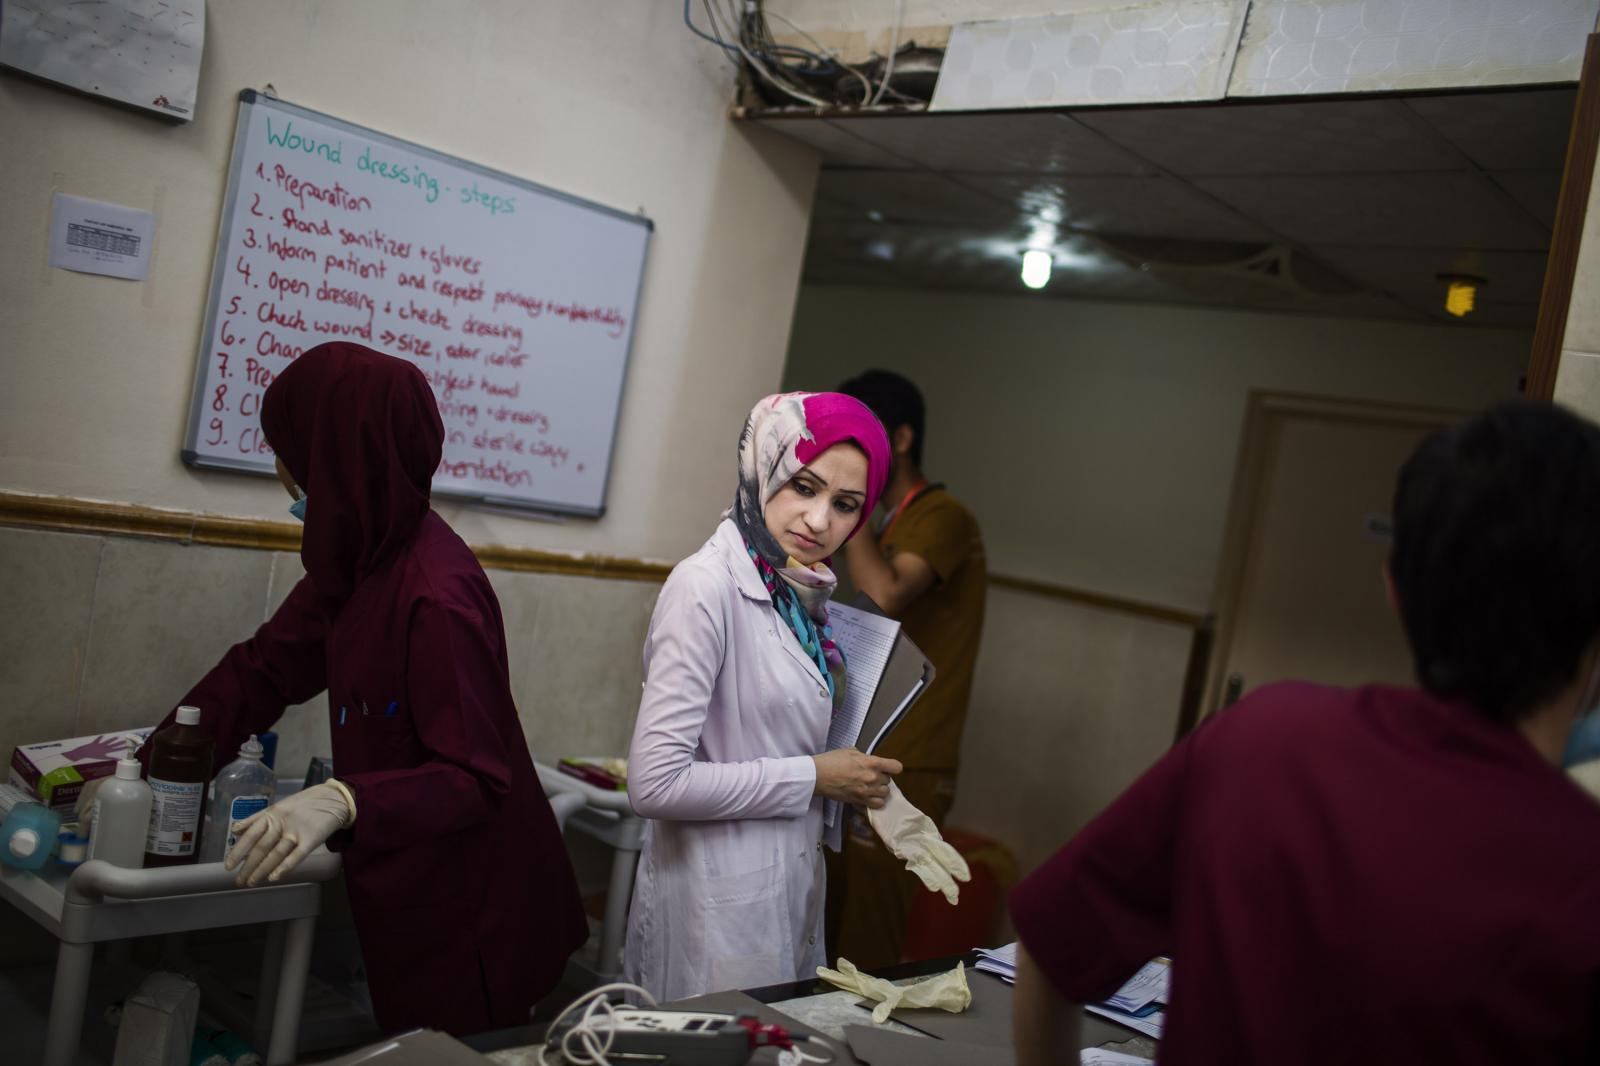 Aswan Ismael is seen while she is working at the hospital. She is from East Mosul. She has been working for MSF for the latest two weeks. She worked one year in a Mosul hospital under DAESH´s regimen. After that, she had to quite. Hamdaniya, Iraq 2017. Diego Ibarra Sánchez for MSF